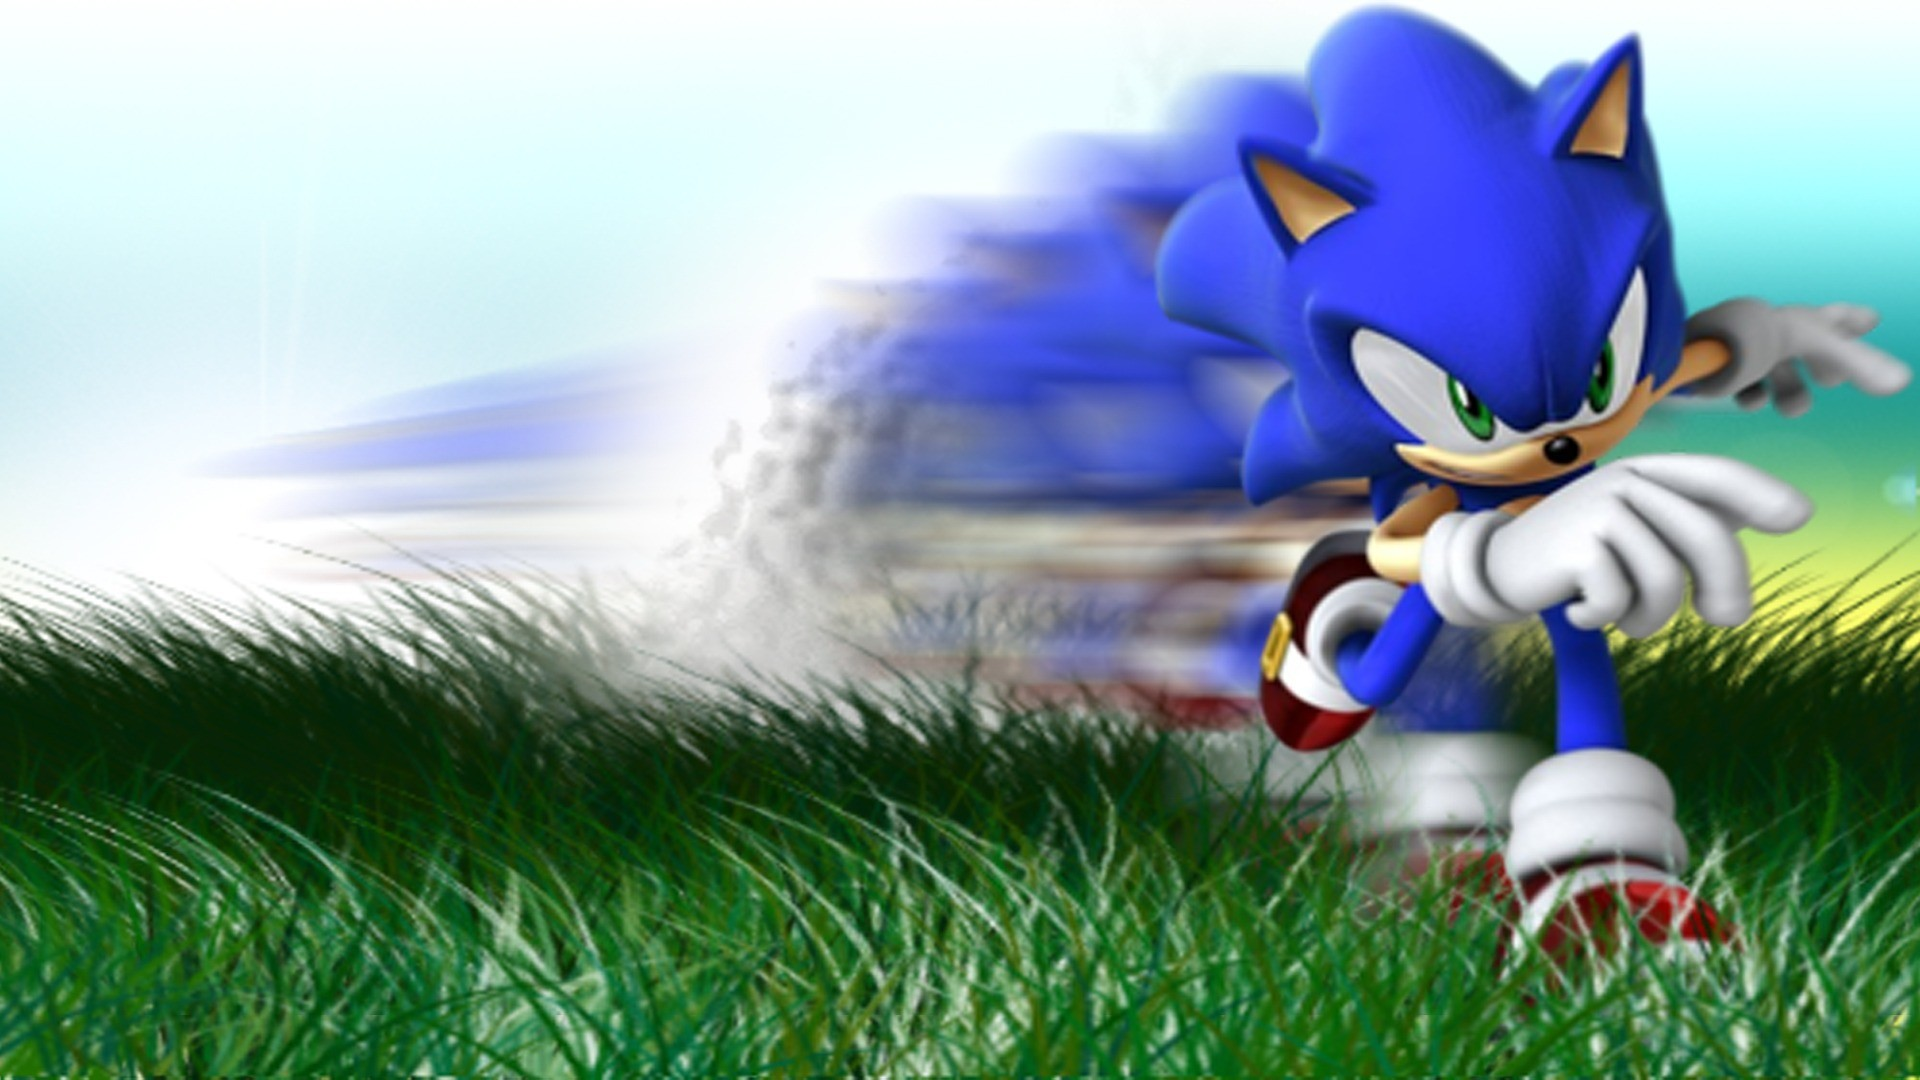 Res: 1920x1080, Sonic Wallpaper Cartoons Anime Animated Wallpapers